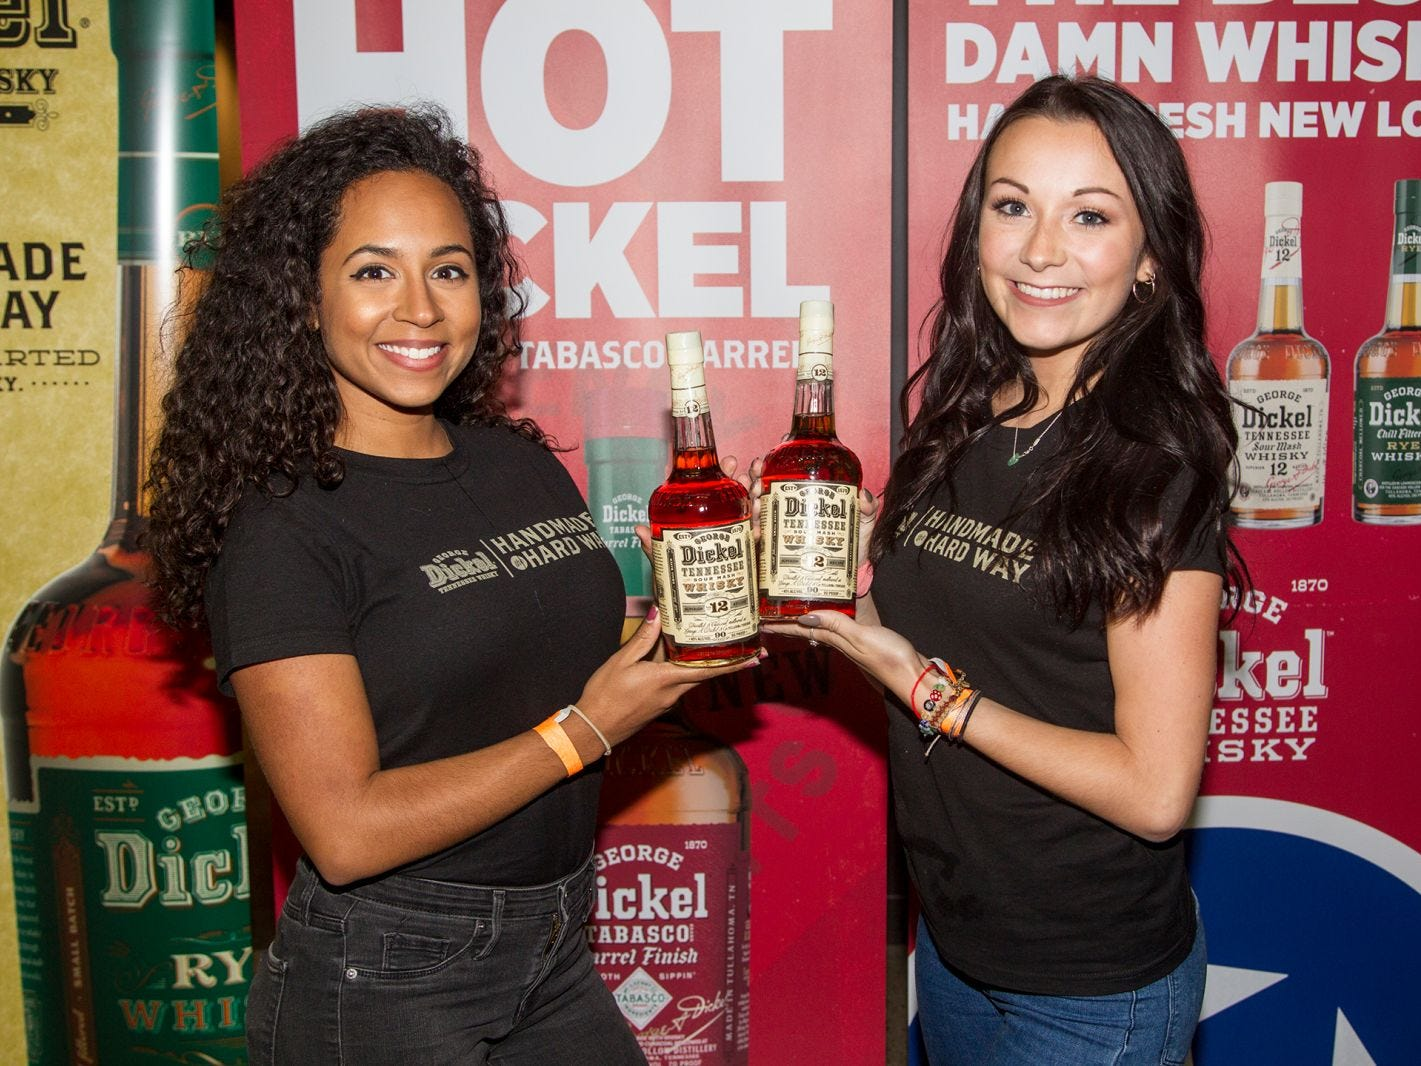 Chelsea, Jenna. Jersey City Craft Distillery Fest at the Harborside Atrium featured more than 100 styles of spirits. Guests had the chance to taste craft-distilled spirits from moonshine, rum, cognac, whiskey, vodka, gin, tequila and more. 09/08/2018